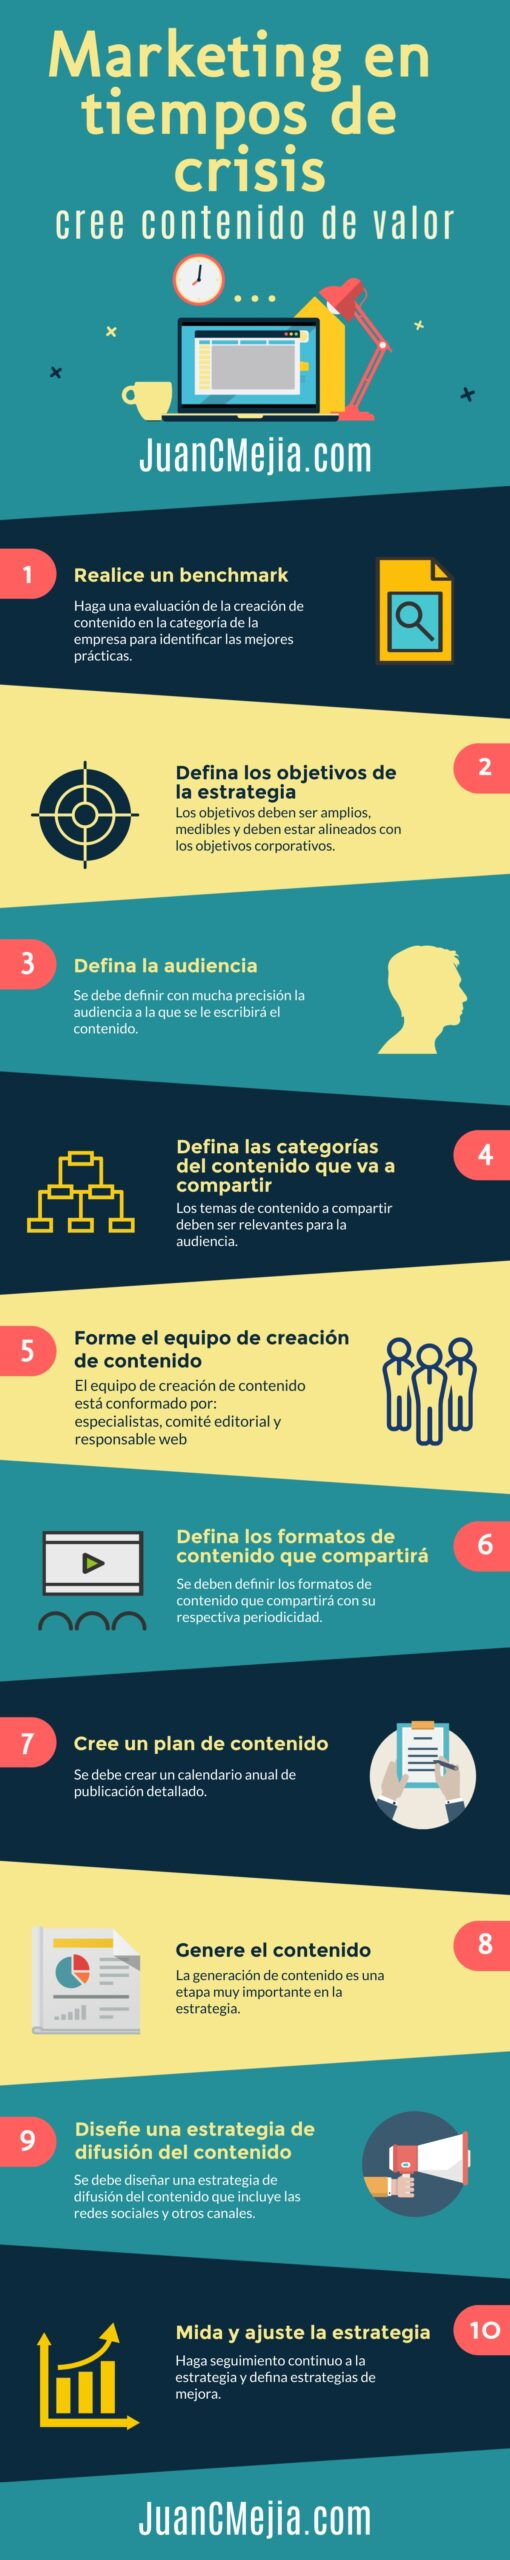 Infografía de marketing en tiempos de crisis